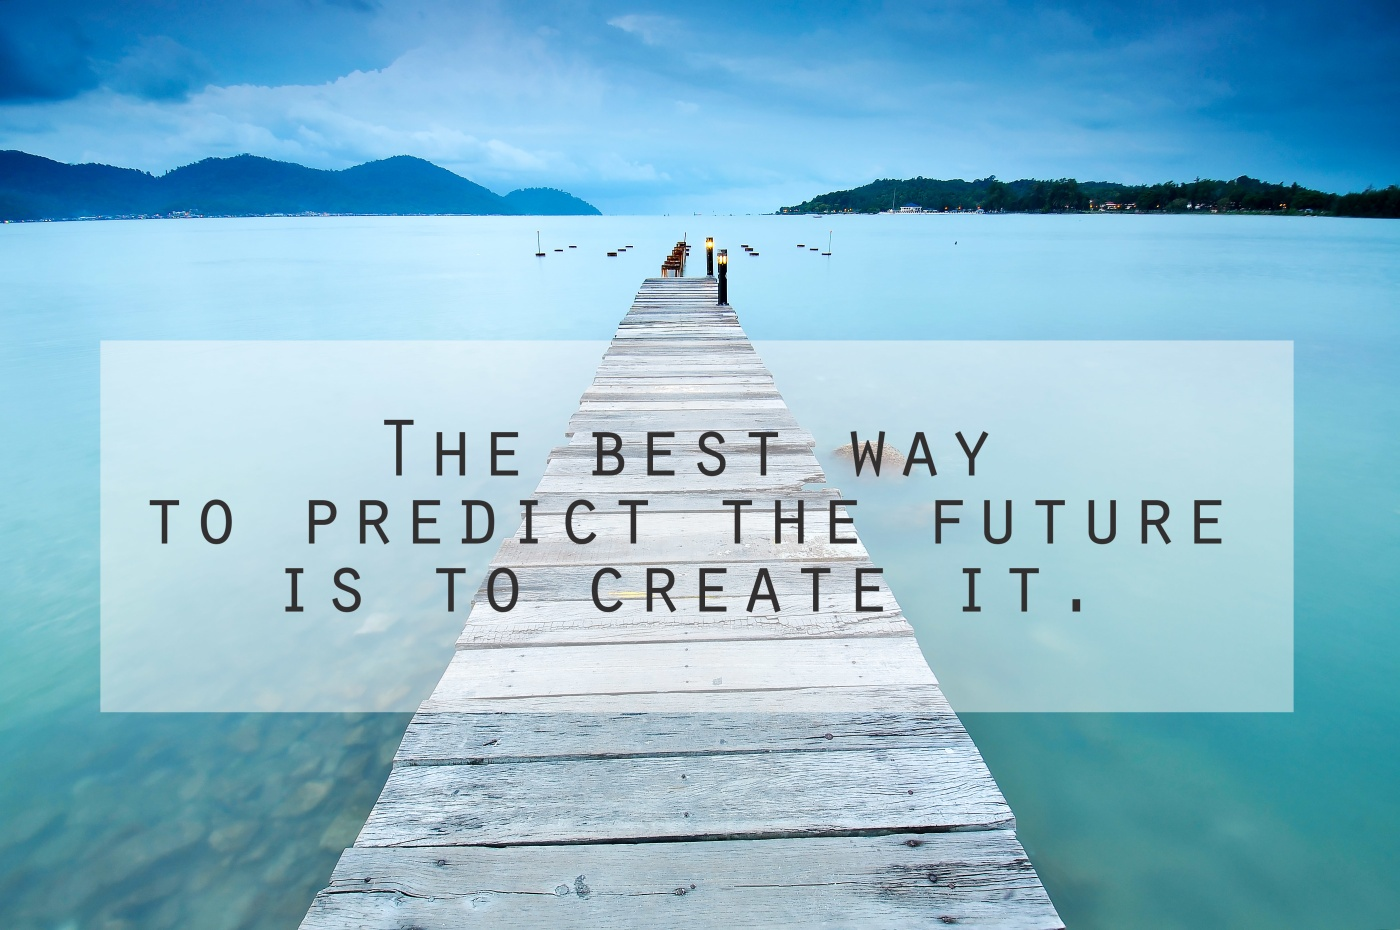 inspirational motivational quote the best way to predict the future is to create it